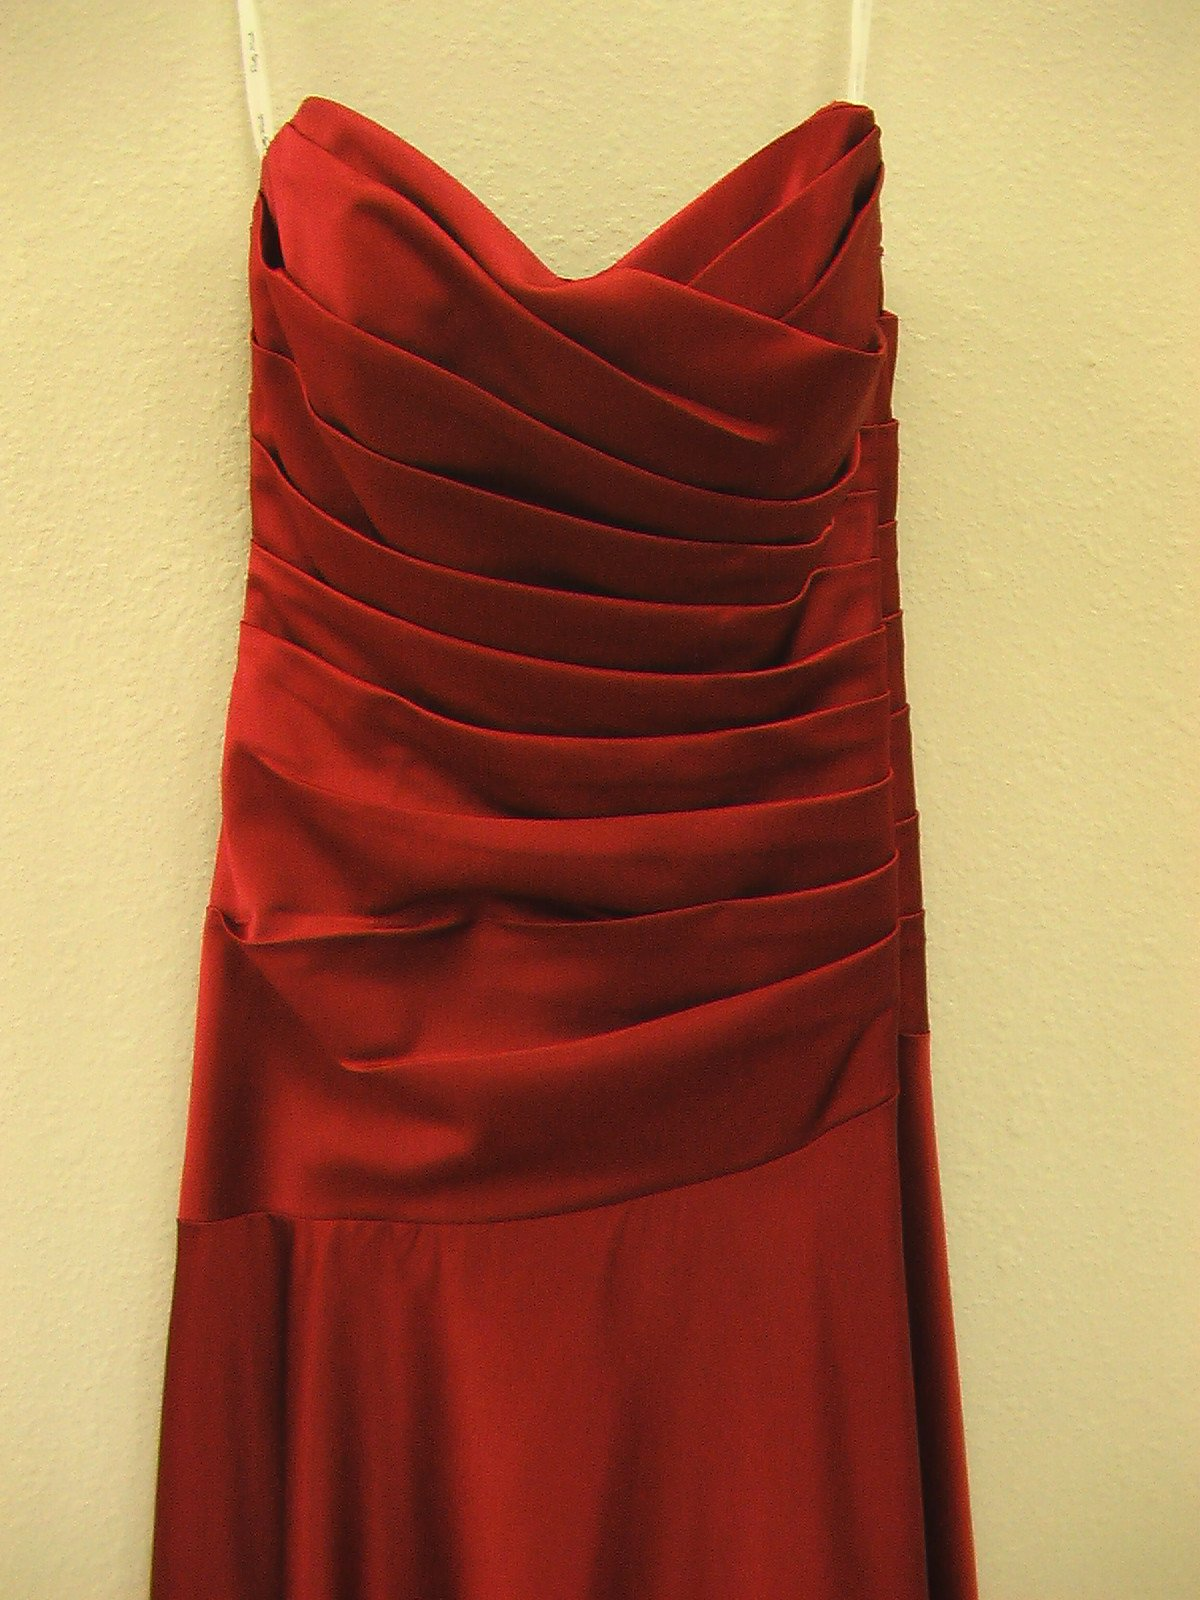 Pretty Maids 22367 Burgundy size 12 In Stock Bridesmaid Dress - Tom's Bridal